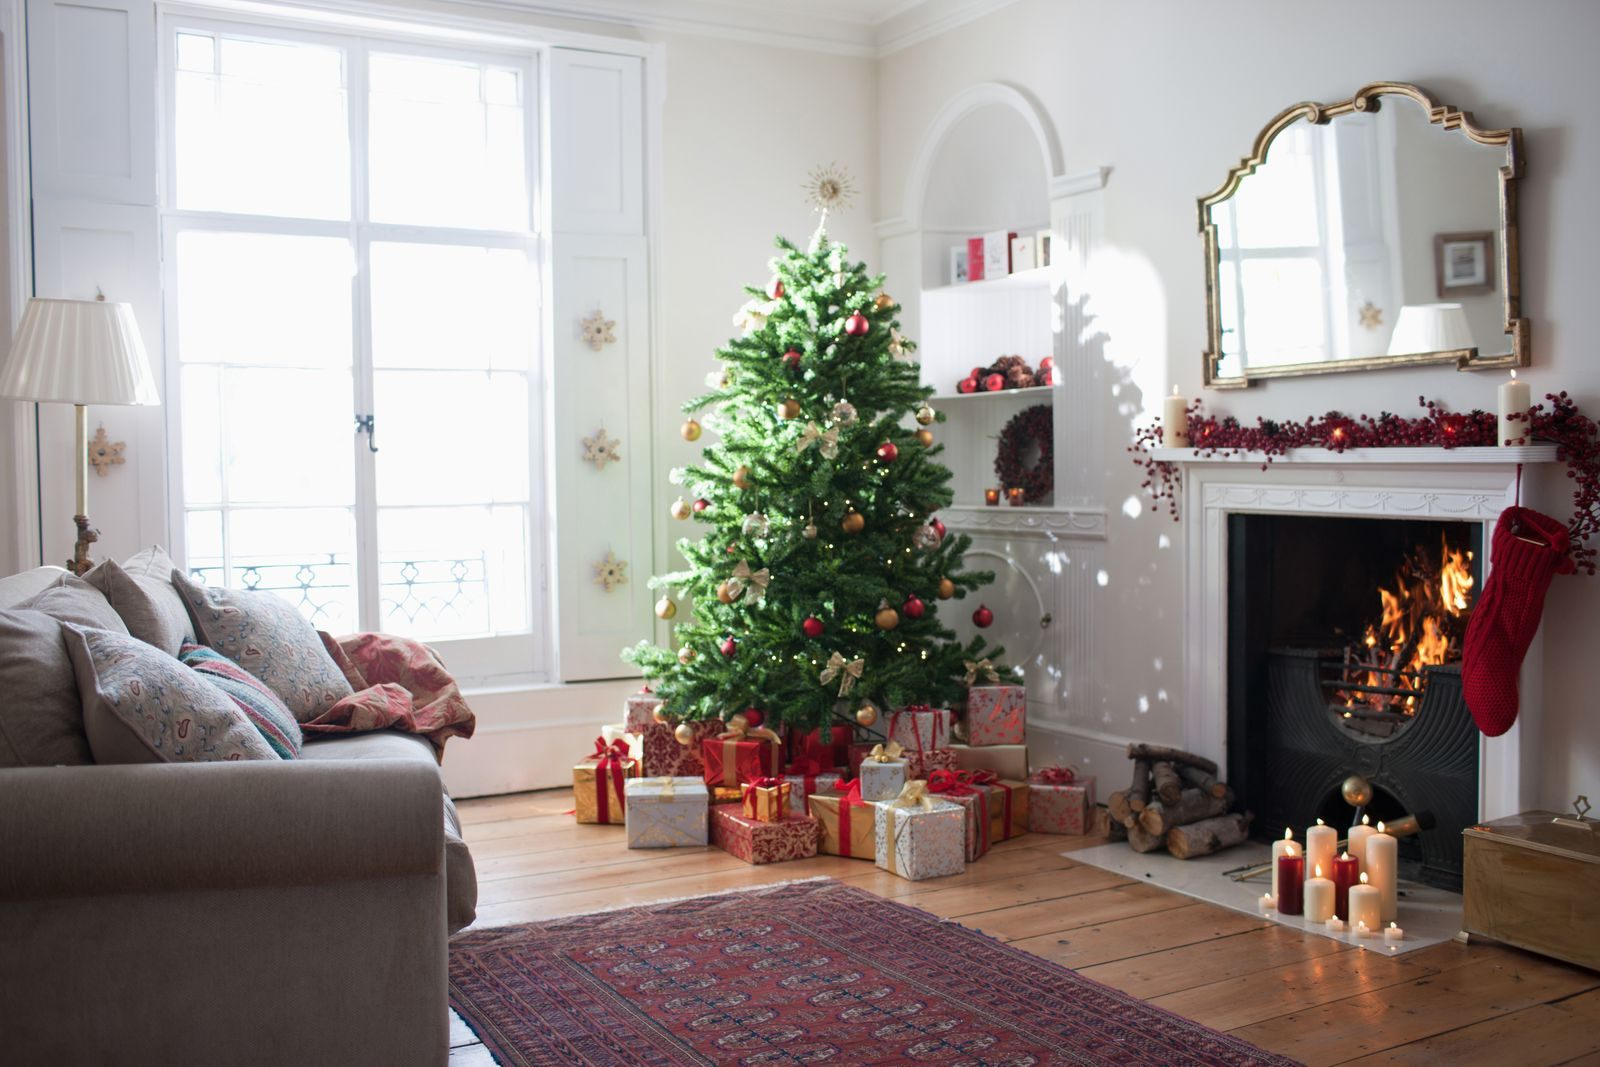 Decking the Halls for an At-Home Christmas This Year? Here's How!